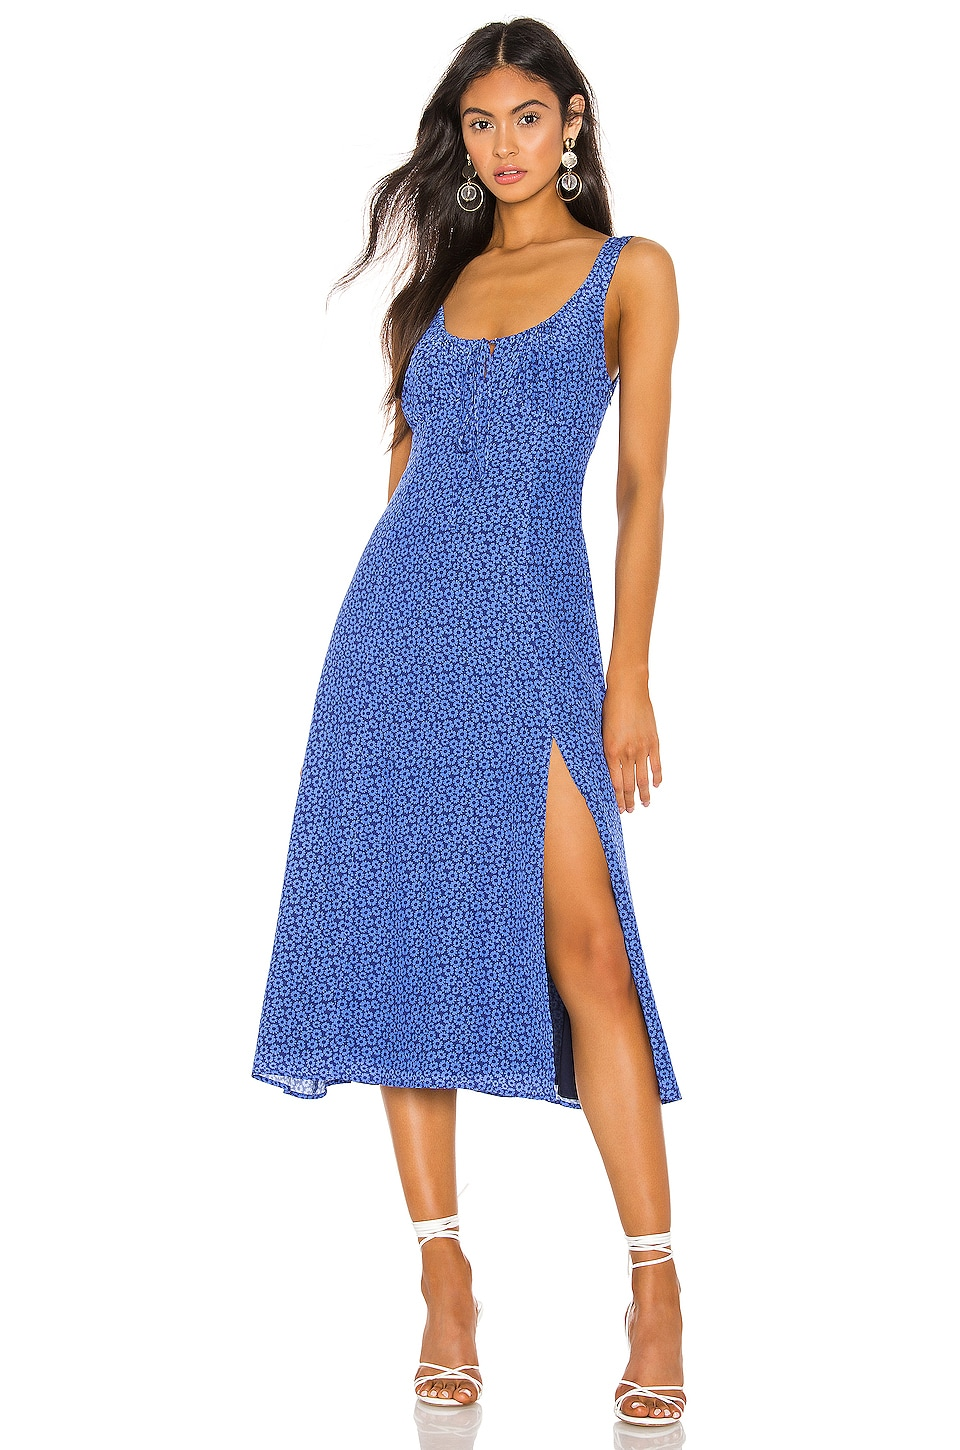 Privacy Please Maryam Midi Dress in Blue Floral